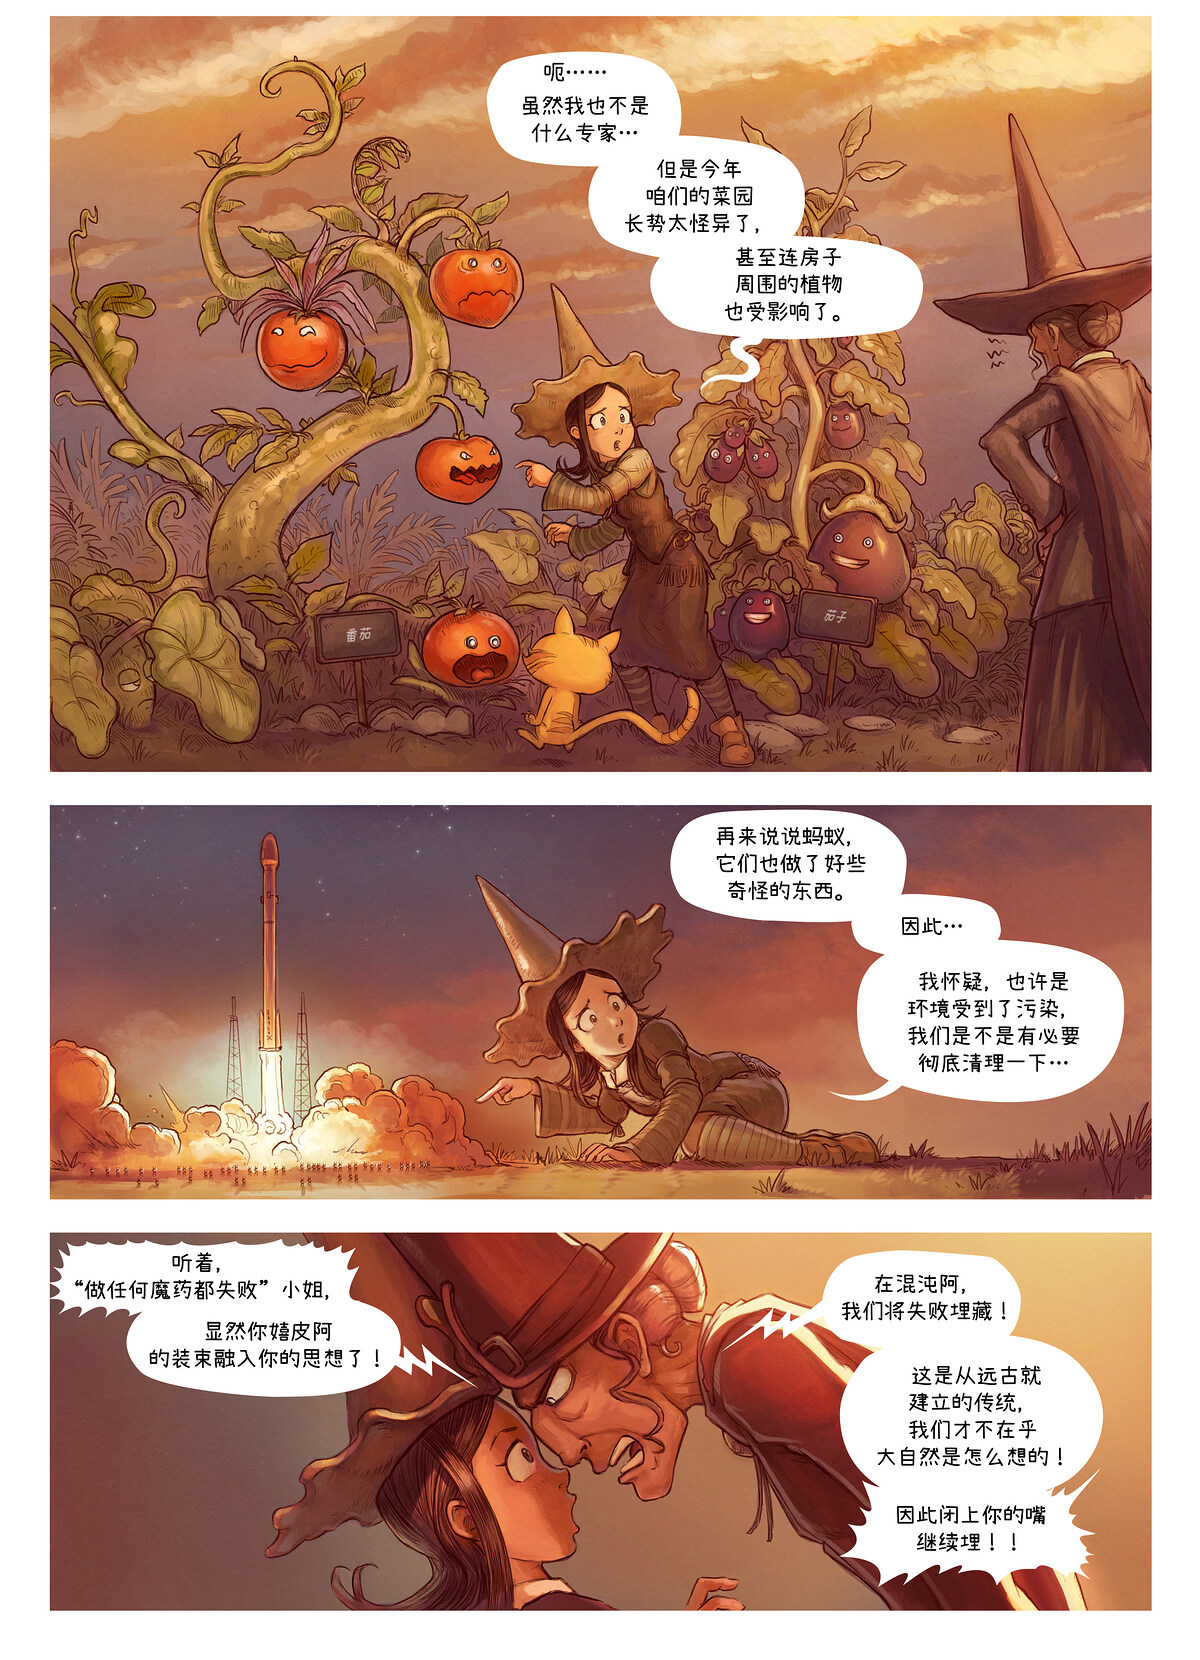 A webcomic page of Pepper&Carrot, 漫画全集 19 [cn], 页面 2